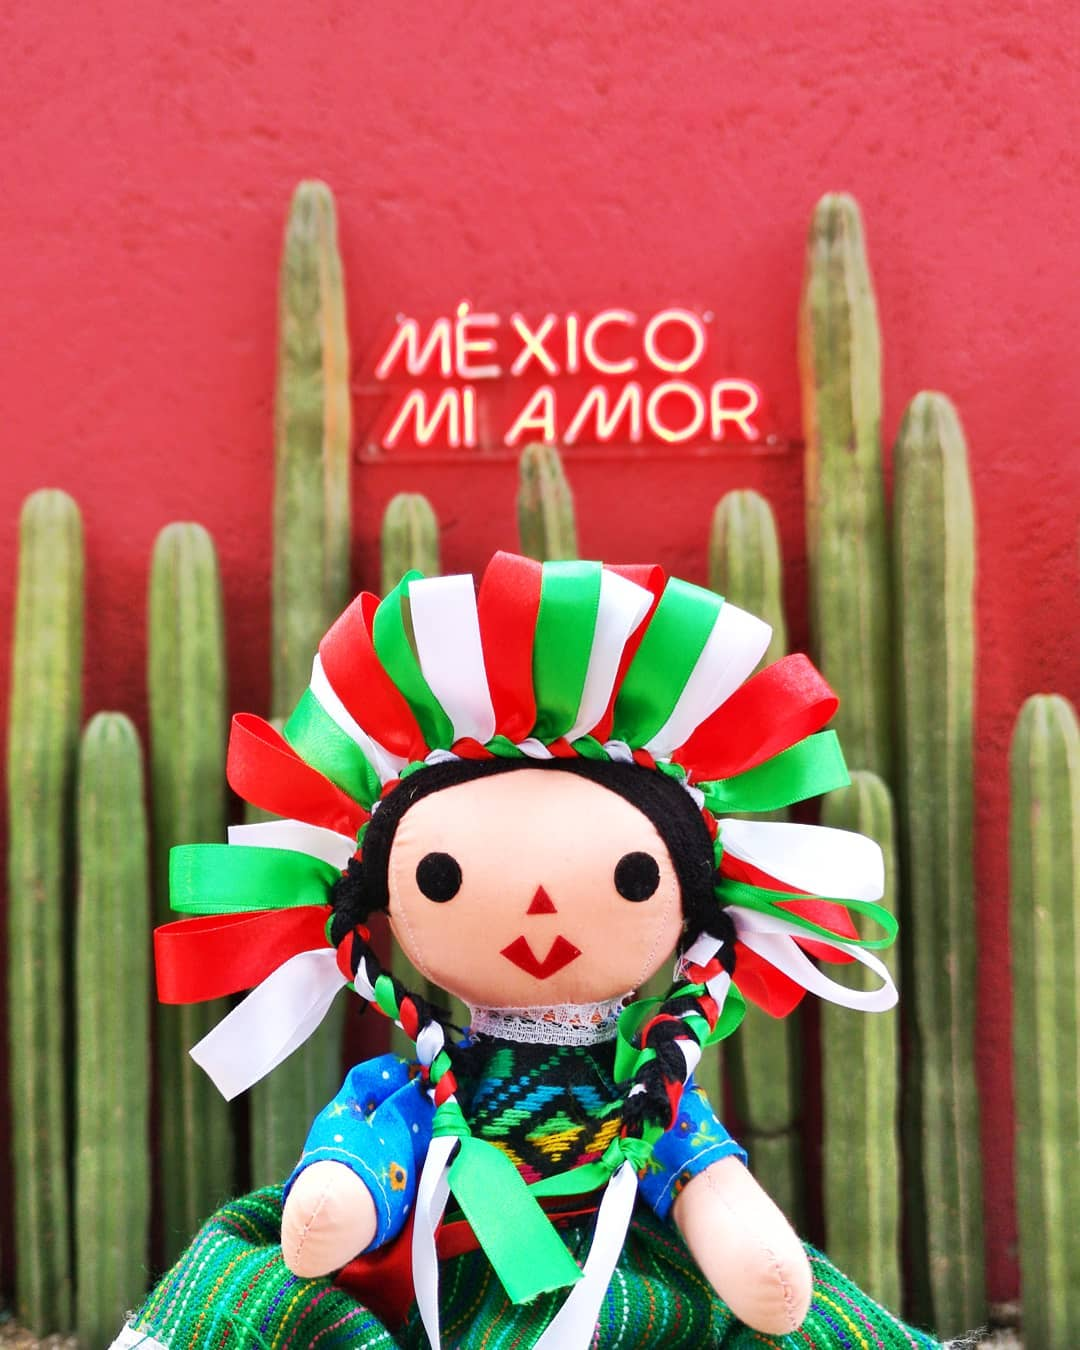 Dolls representing the history and tradition of Mexico's indigenous culture